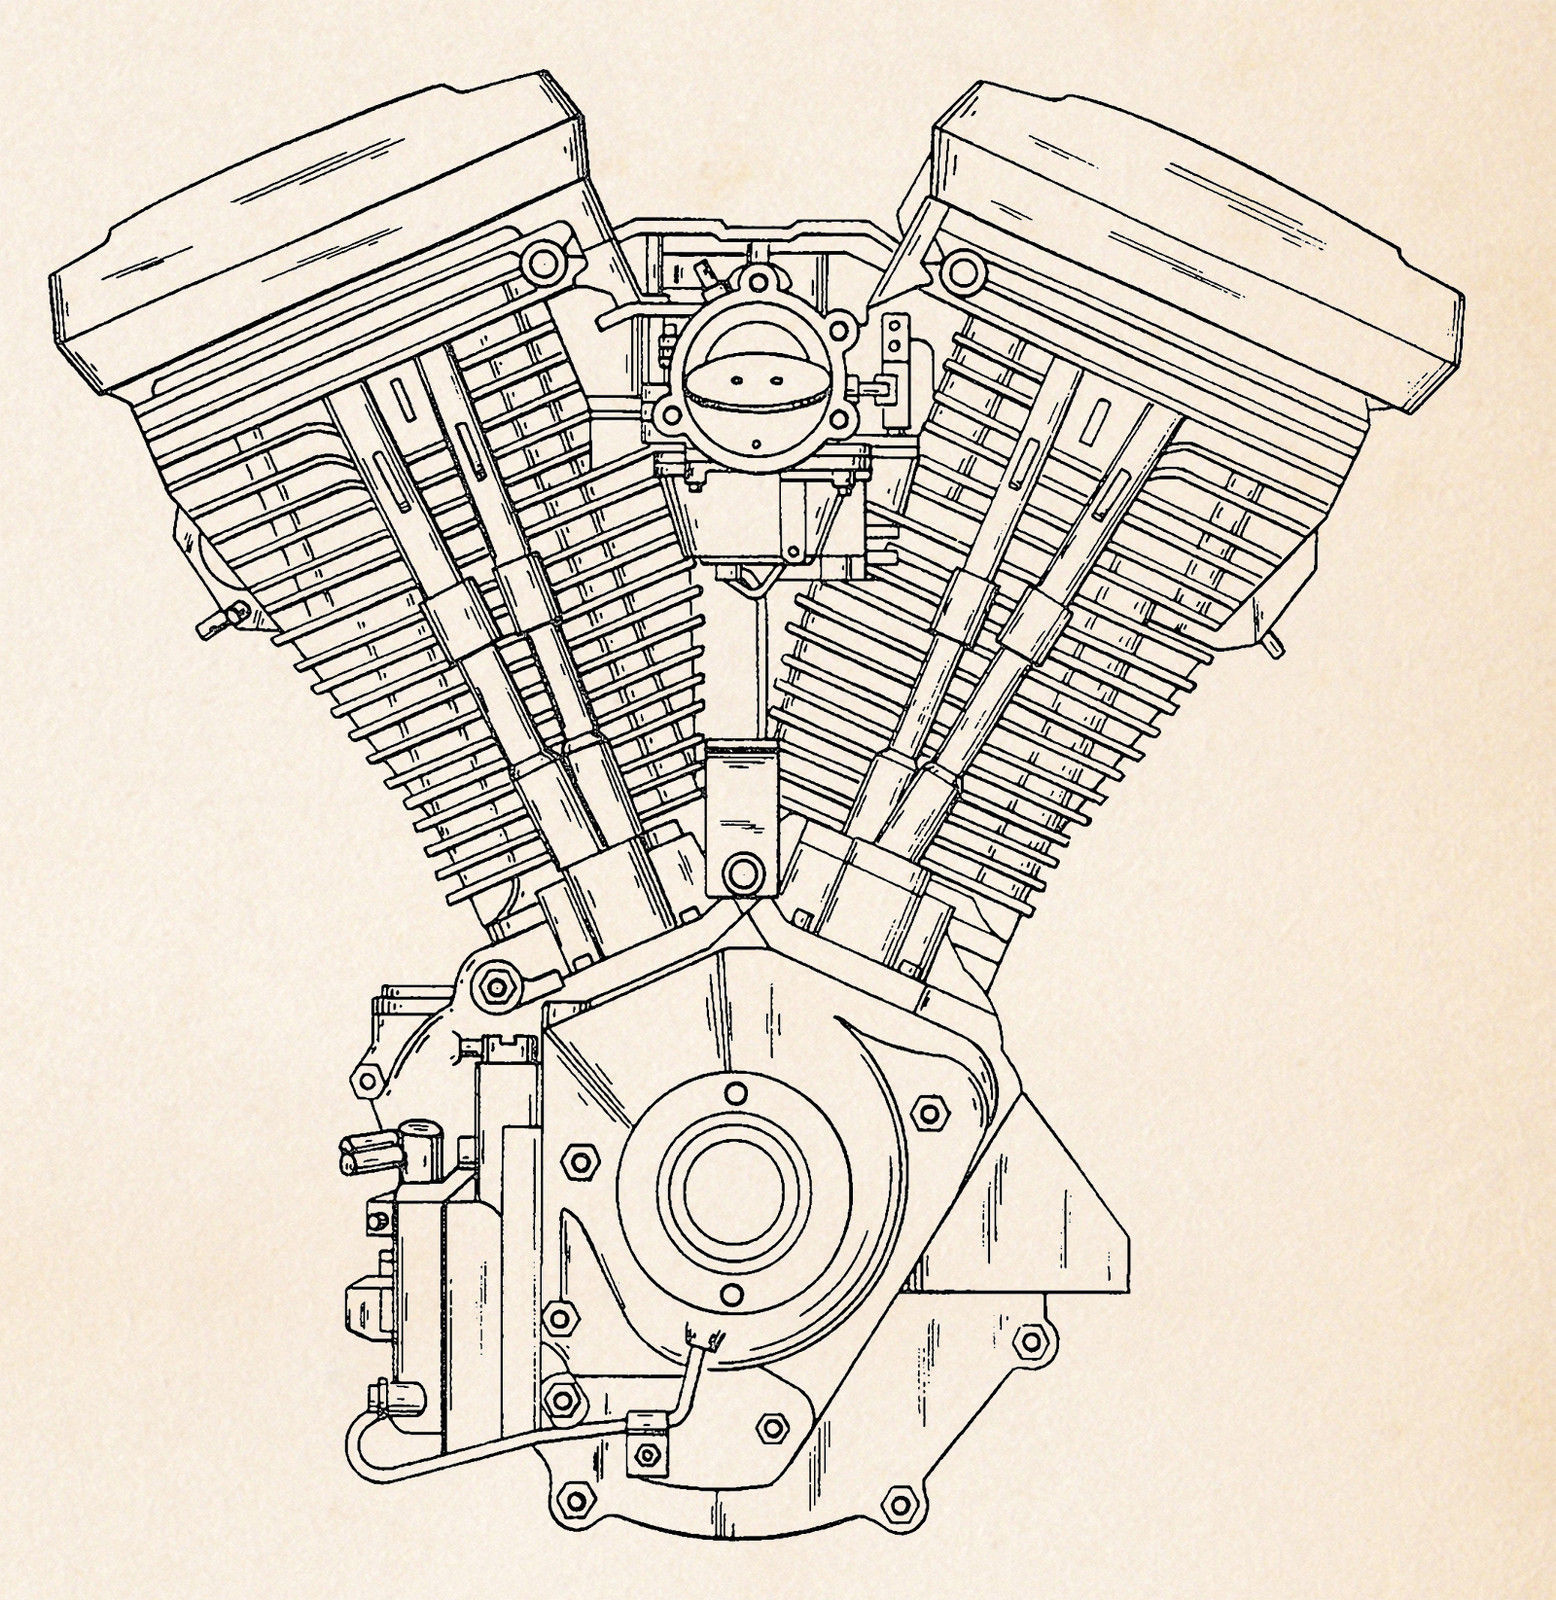 hight resolution of harley motorcycle art evolution engine patent drawing posters